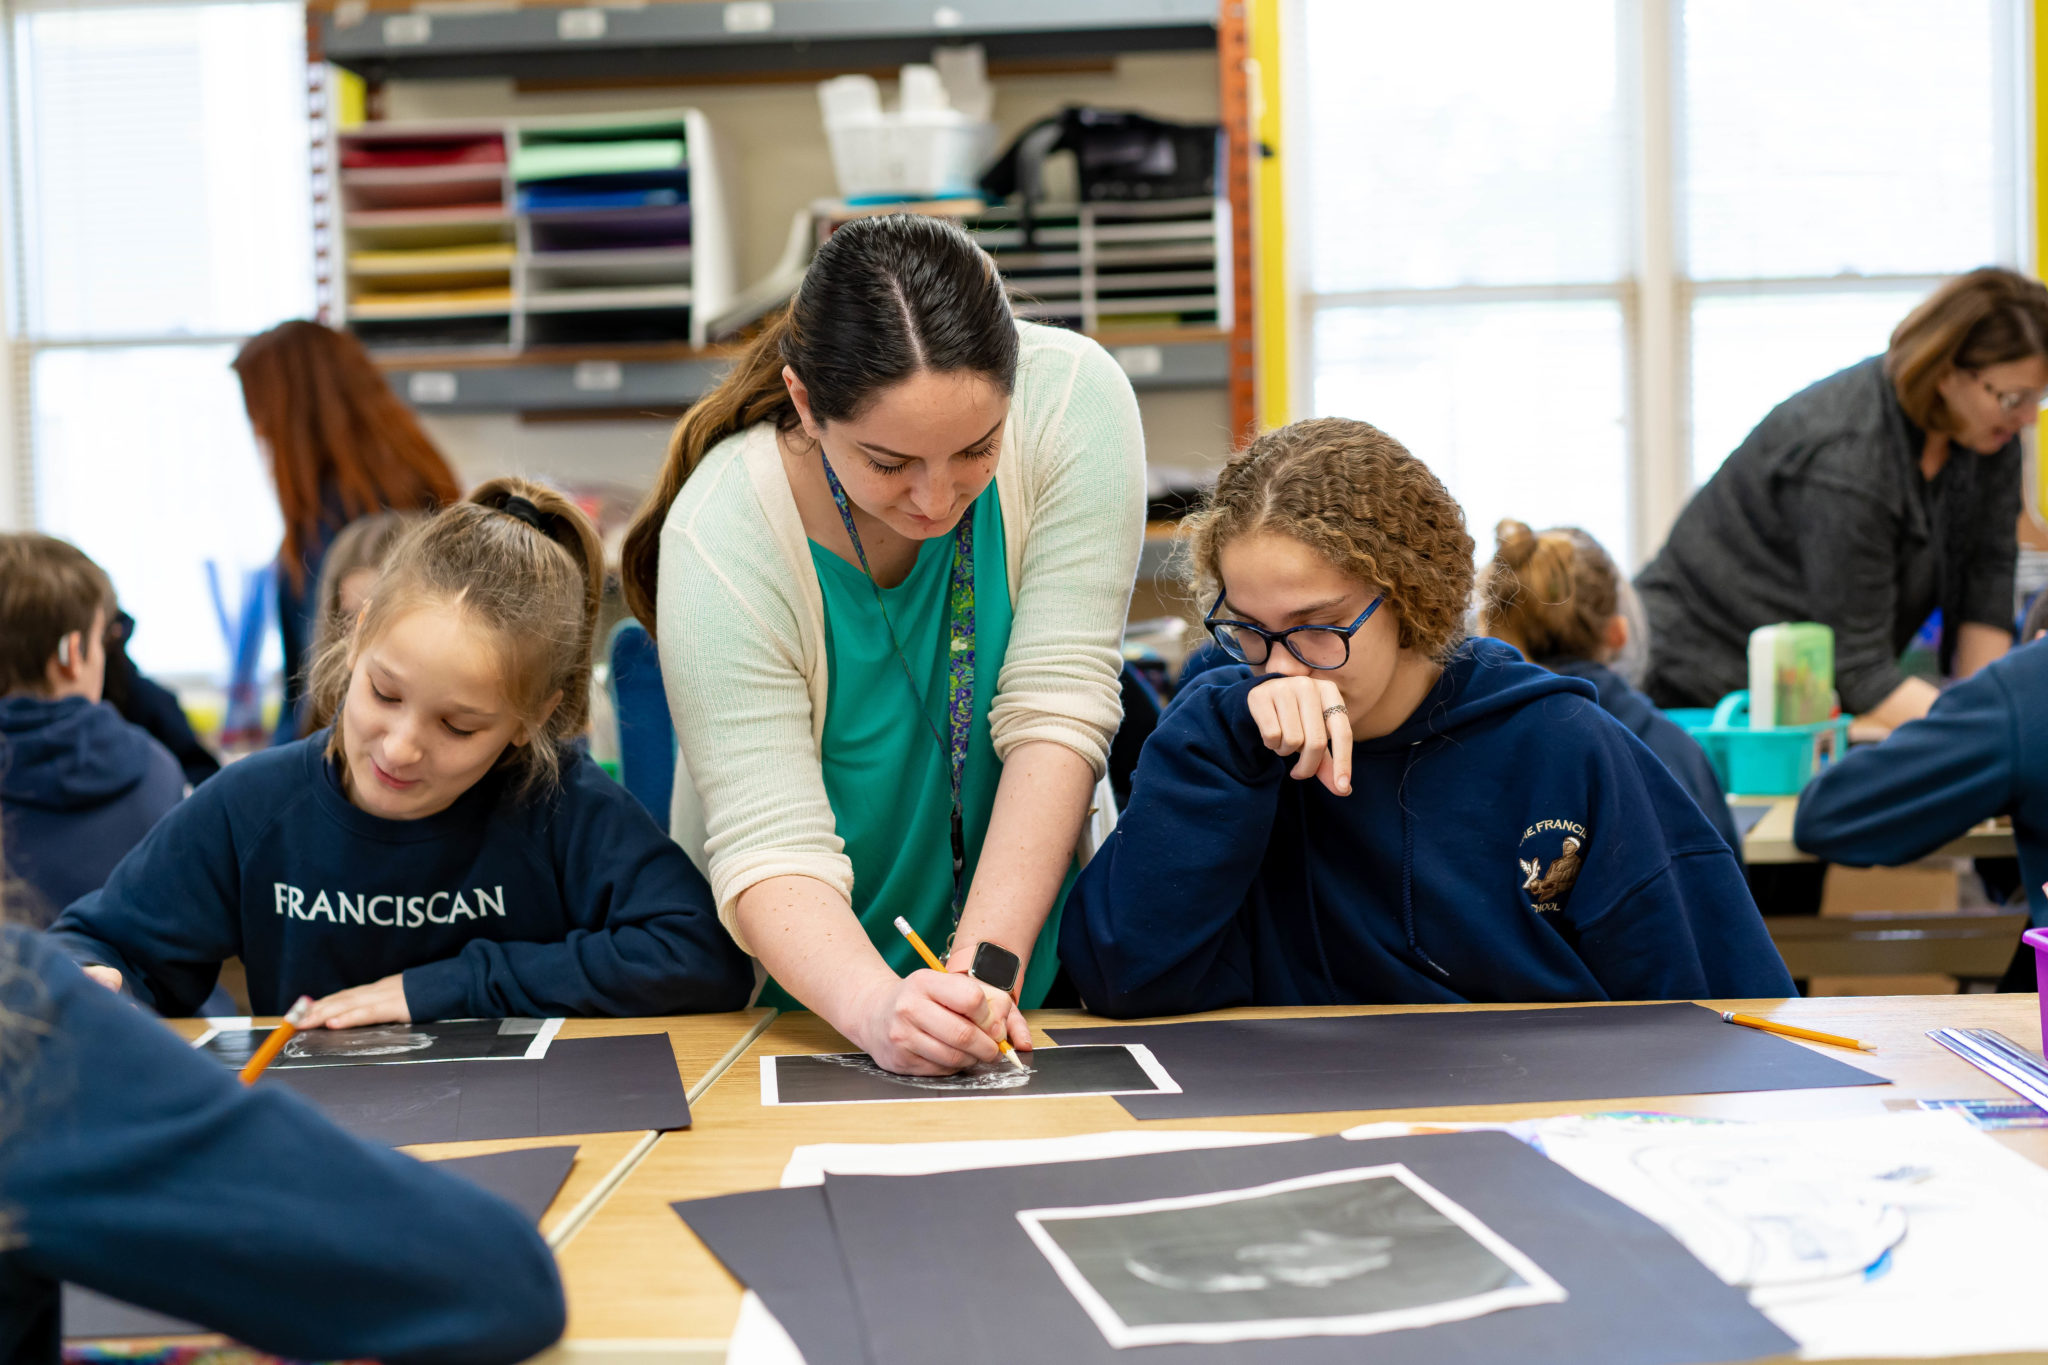 Careers at The Franciscan School